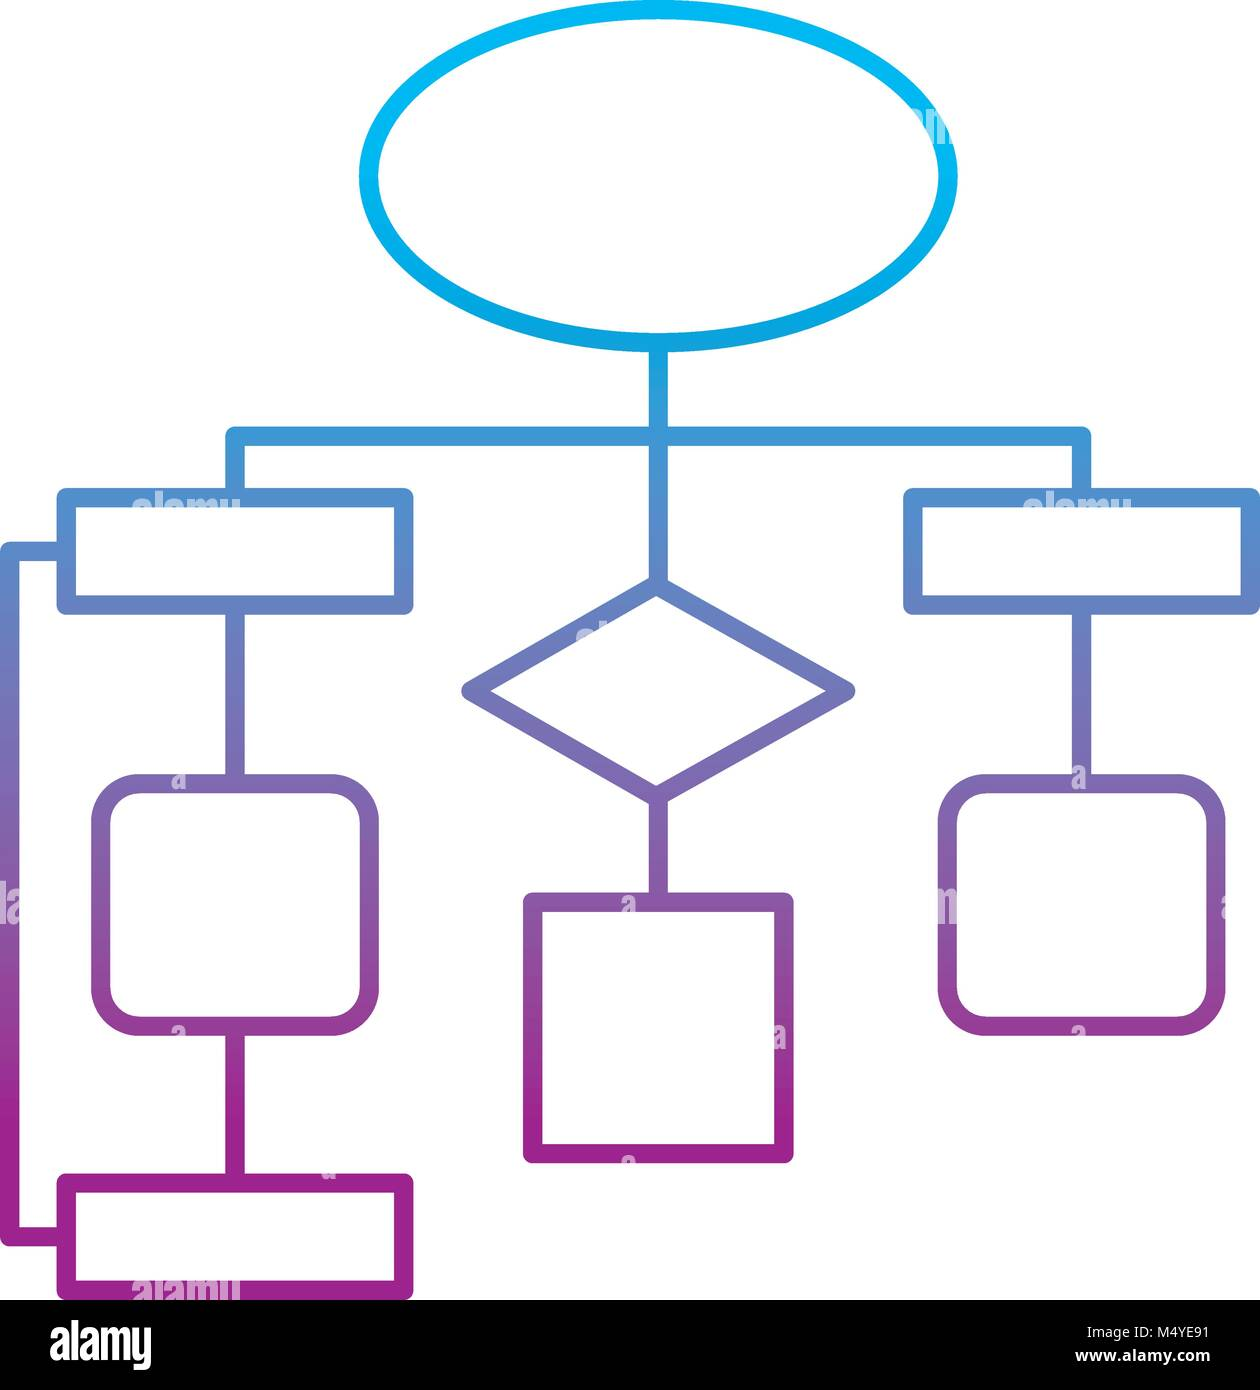 hight resolution of diagram flow chart connection empty